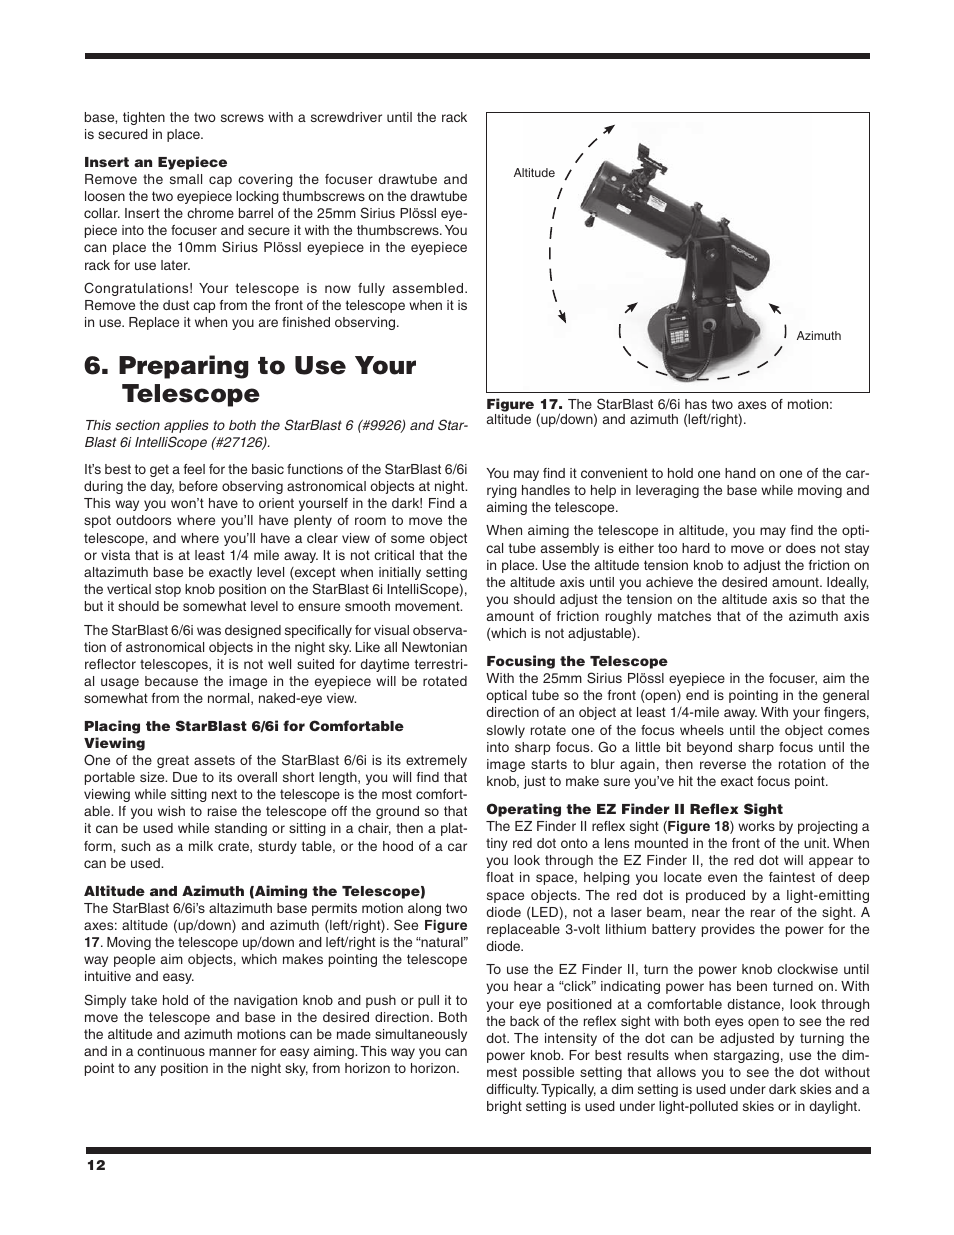 Preparing to use your telescope | Orion STARBLAST 6/6I User Manual | Page 12